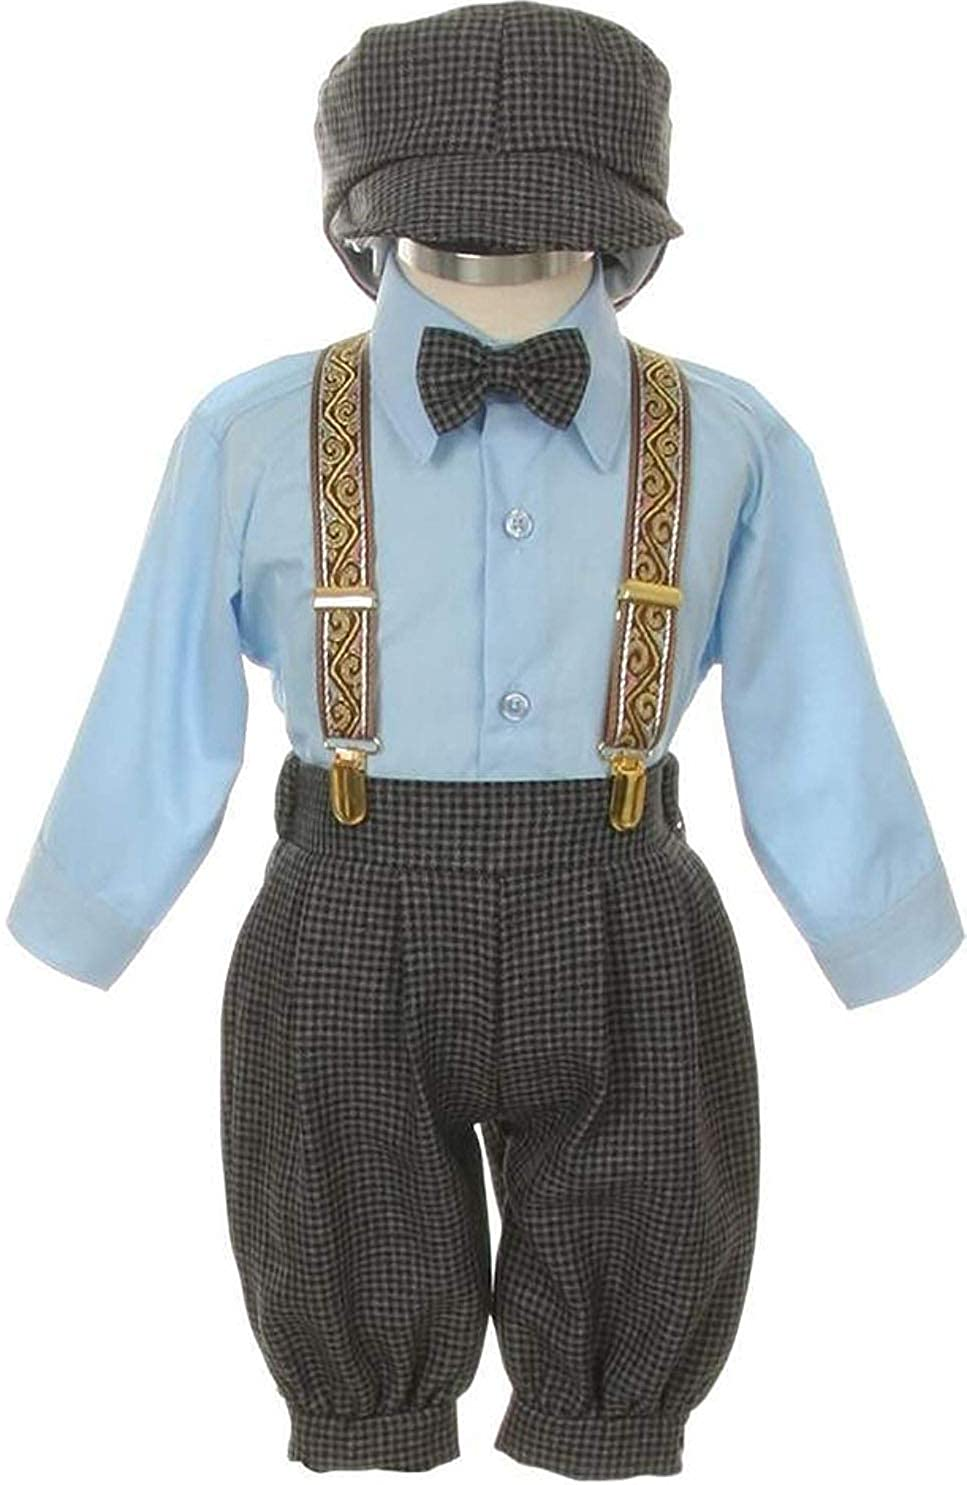 SK Vintage Dress Suit-Tuxedo Knickers Outfit Baby Boys /& Toddler